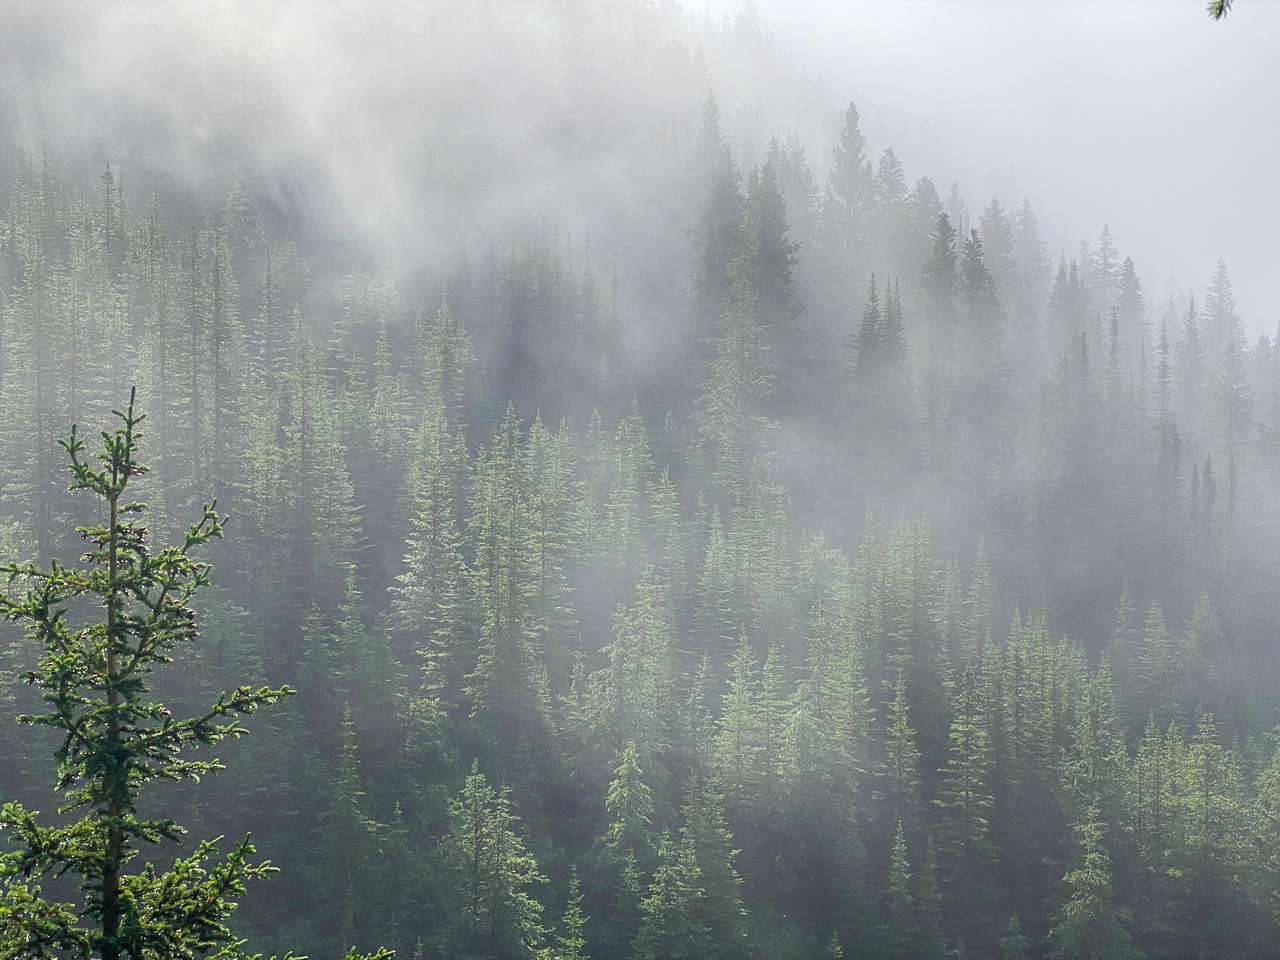 Hiking up the steep, unrelenting Aylmer Pass trail in morning mist.